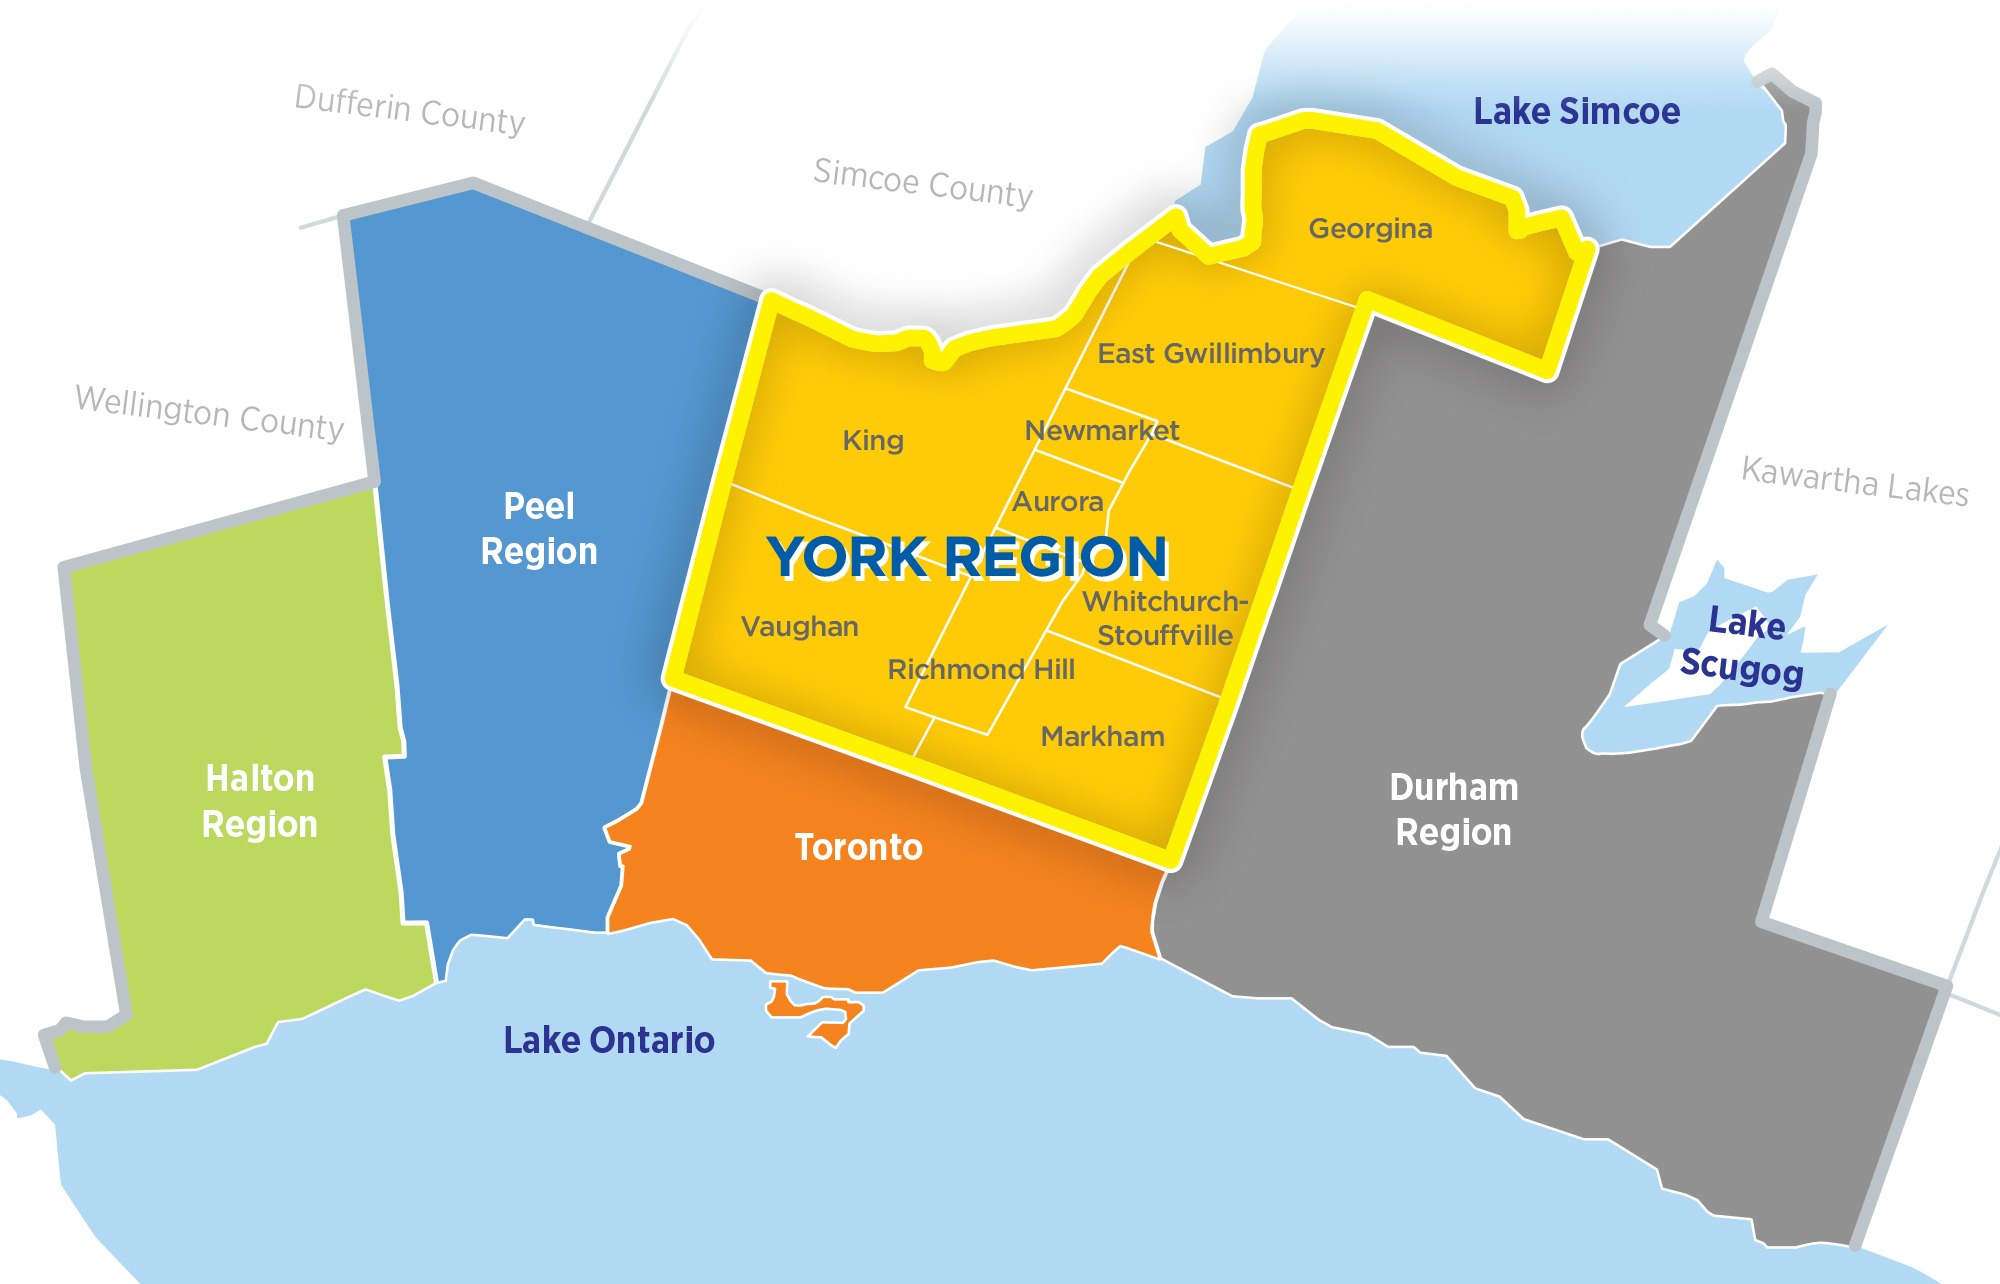 Map of GTA Regions